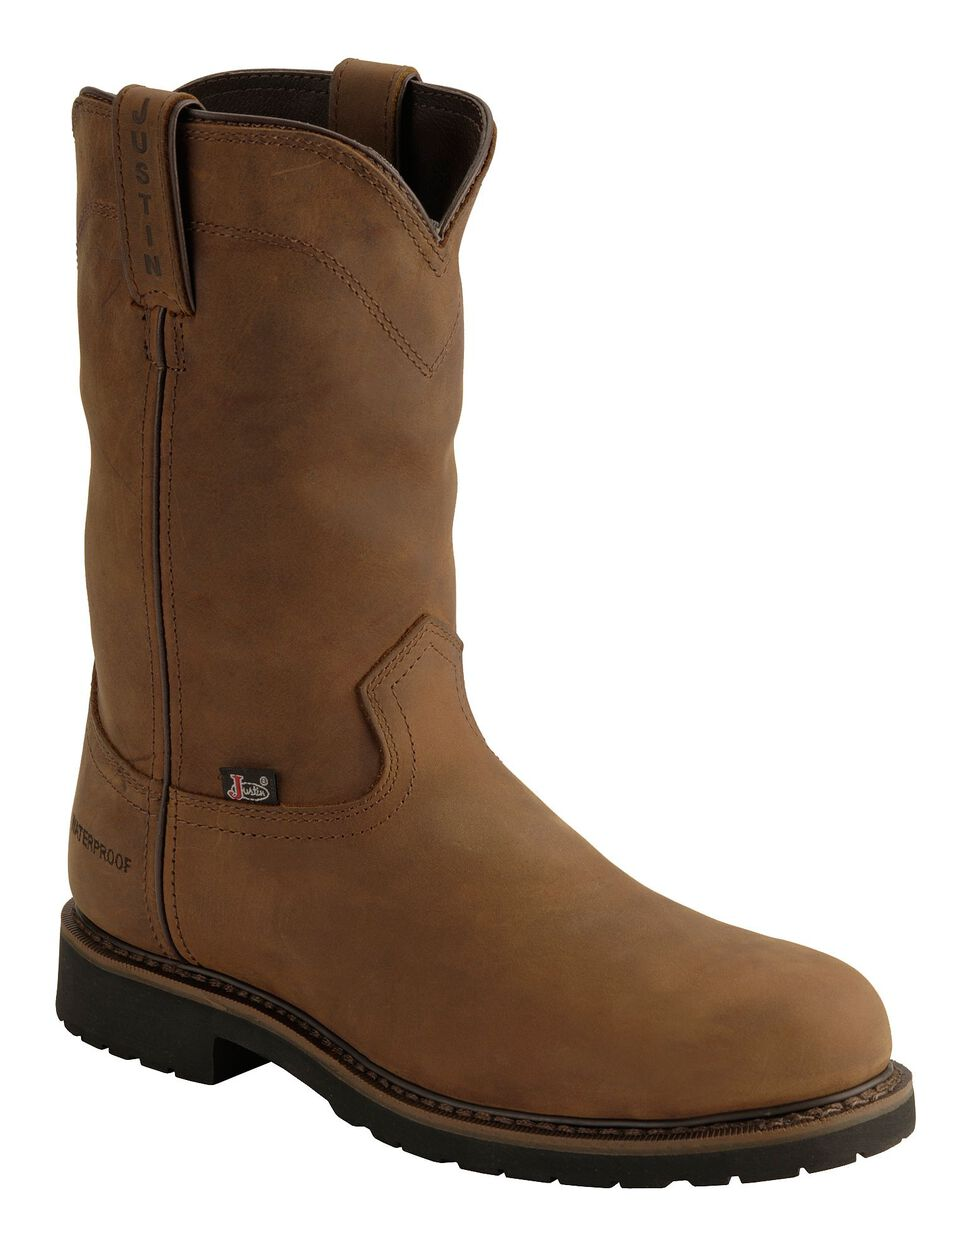 Justin Men's Drywall Waterproof Pull-On Work Boots - Steel Toe, Brown, hi-res